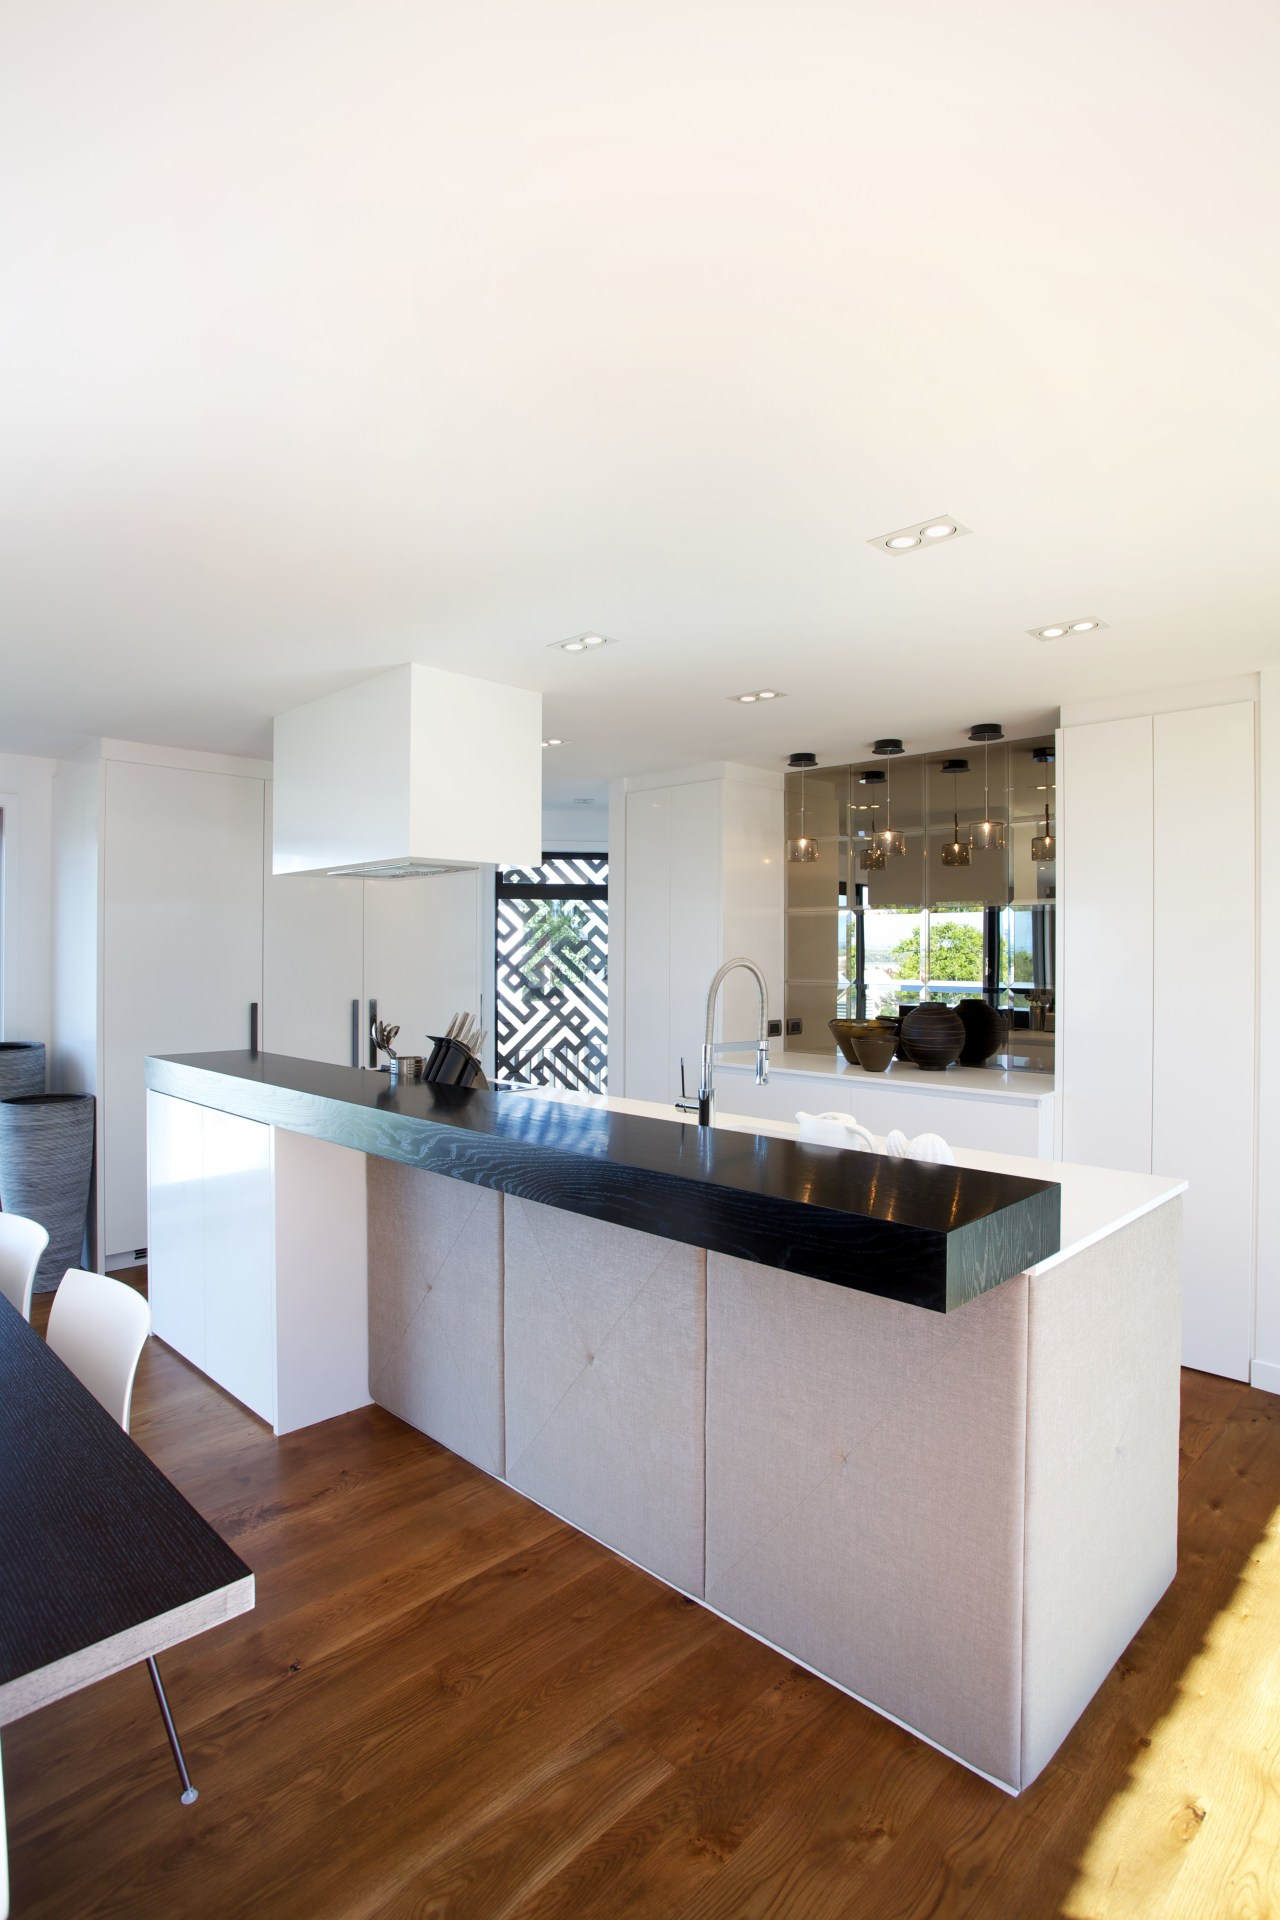 This contemporary townhouse designed by Paul Izzard features architecture, countertop, floor, house, interior design, kitchen, real estate, room, white